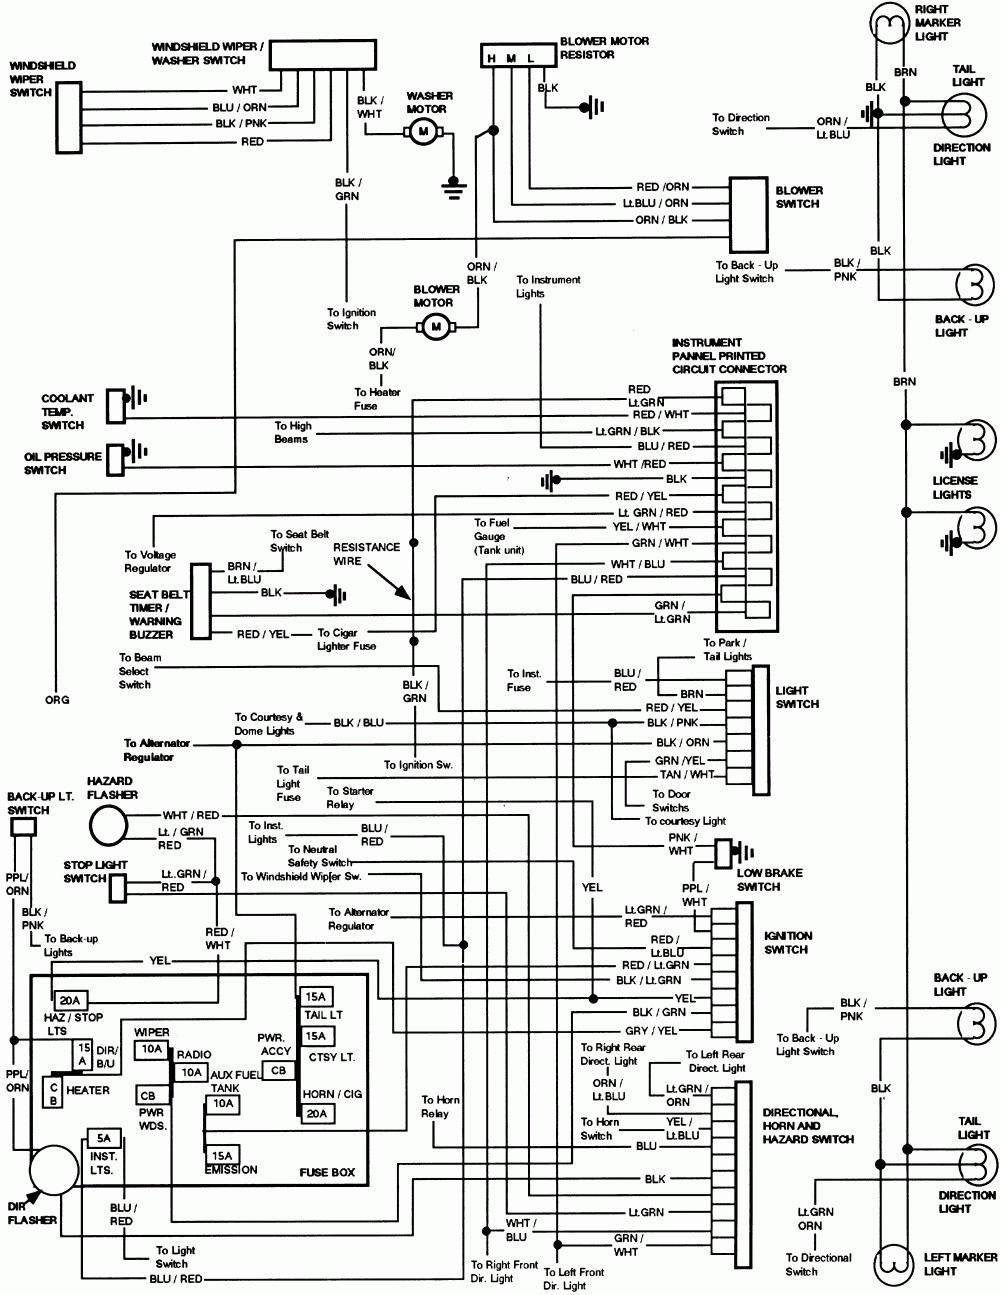 hight resolution of 1987 ford e250 wiring diagram wiring diagram used 1987 ford e350 wiring diagram 1986 ford e250